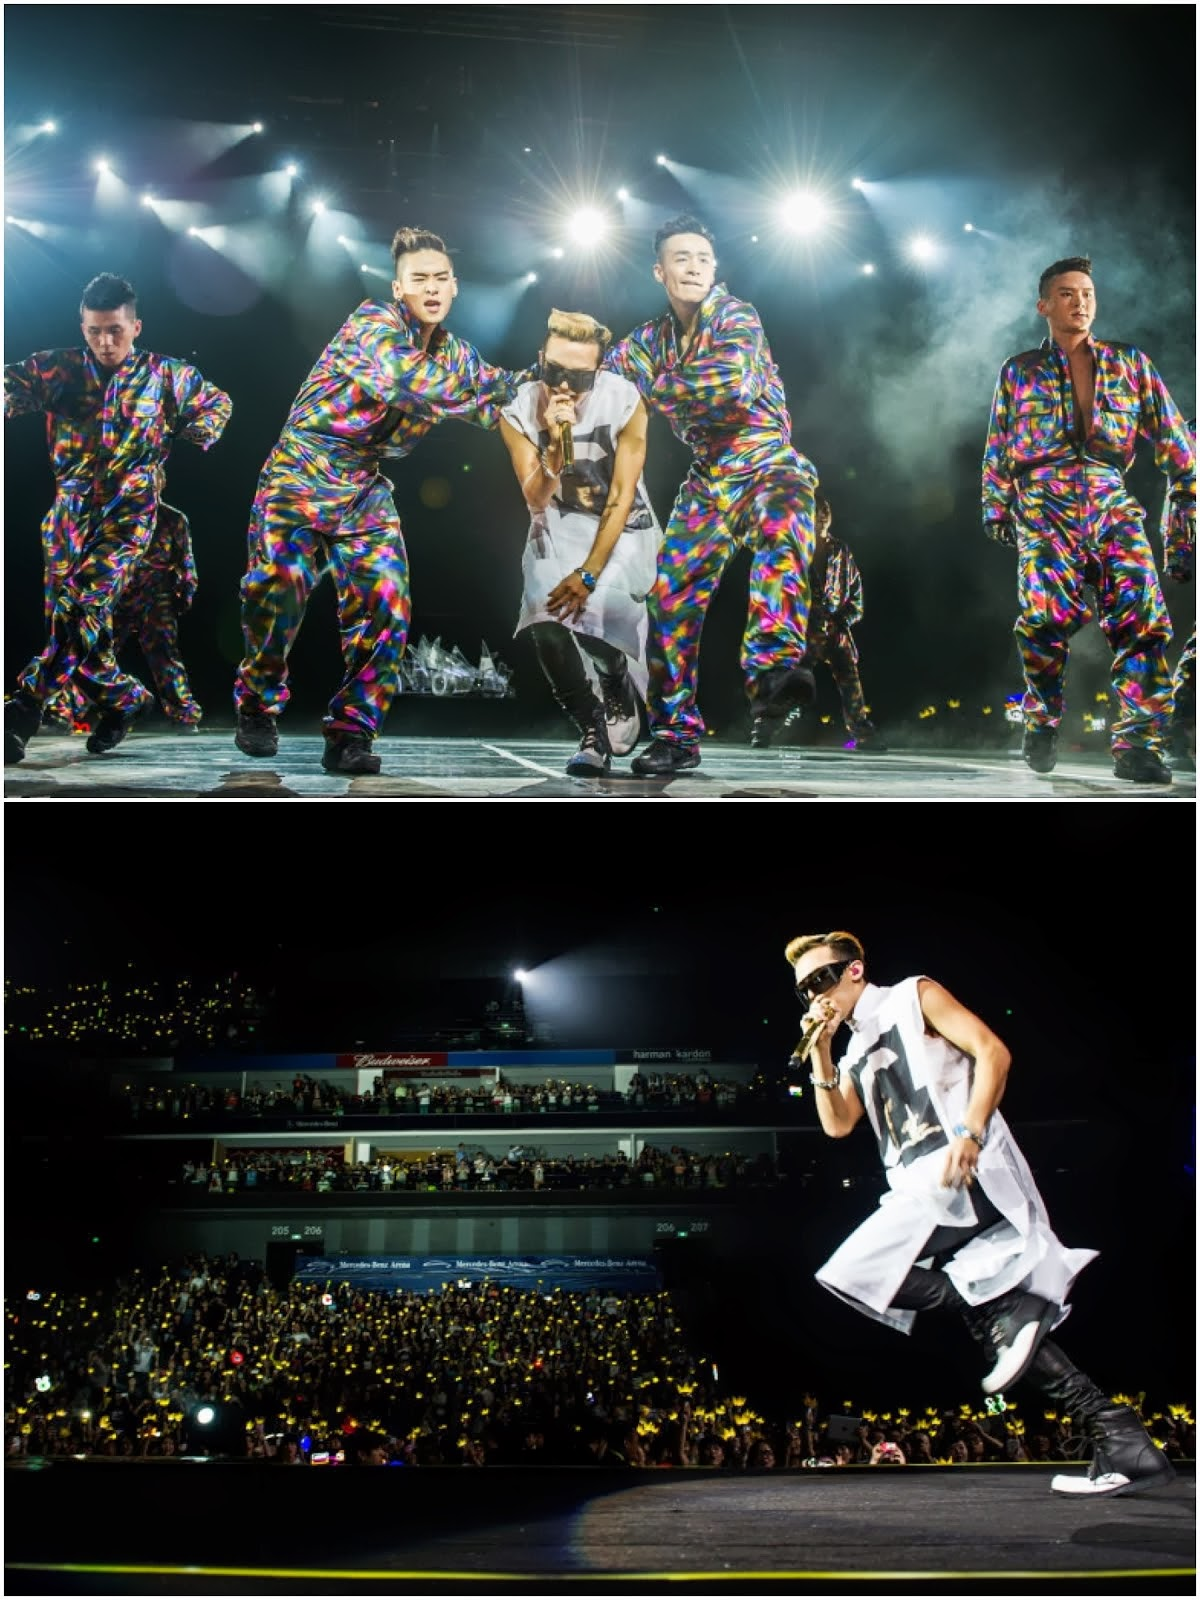 00O00 Menswear Blog: G-Dragon from Big Bang in Givenchy - World Tour 2013 Shanghai Concert May 2013